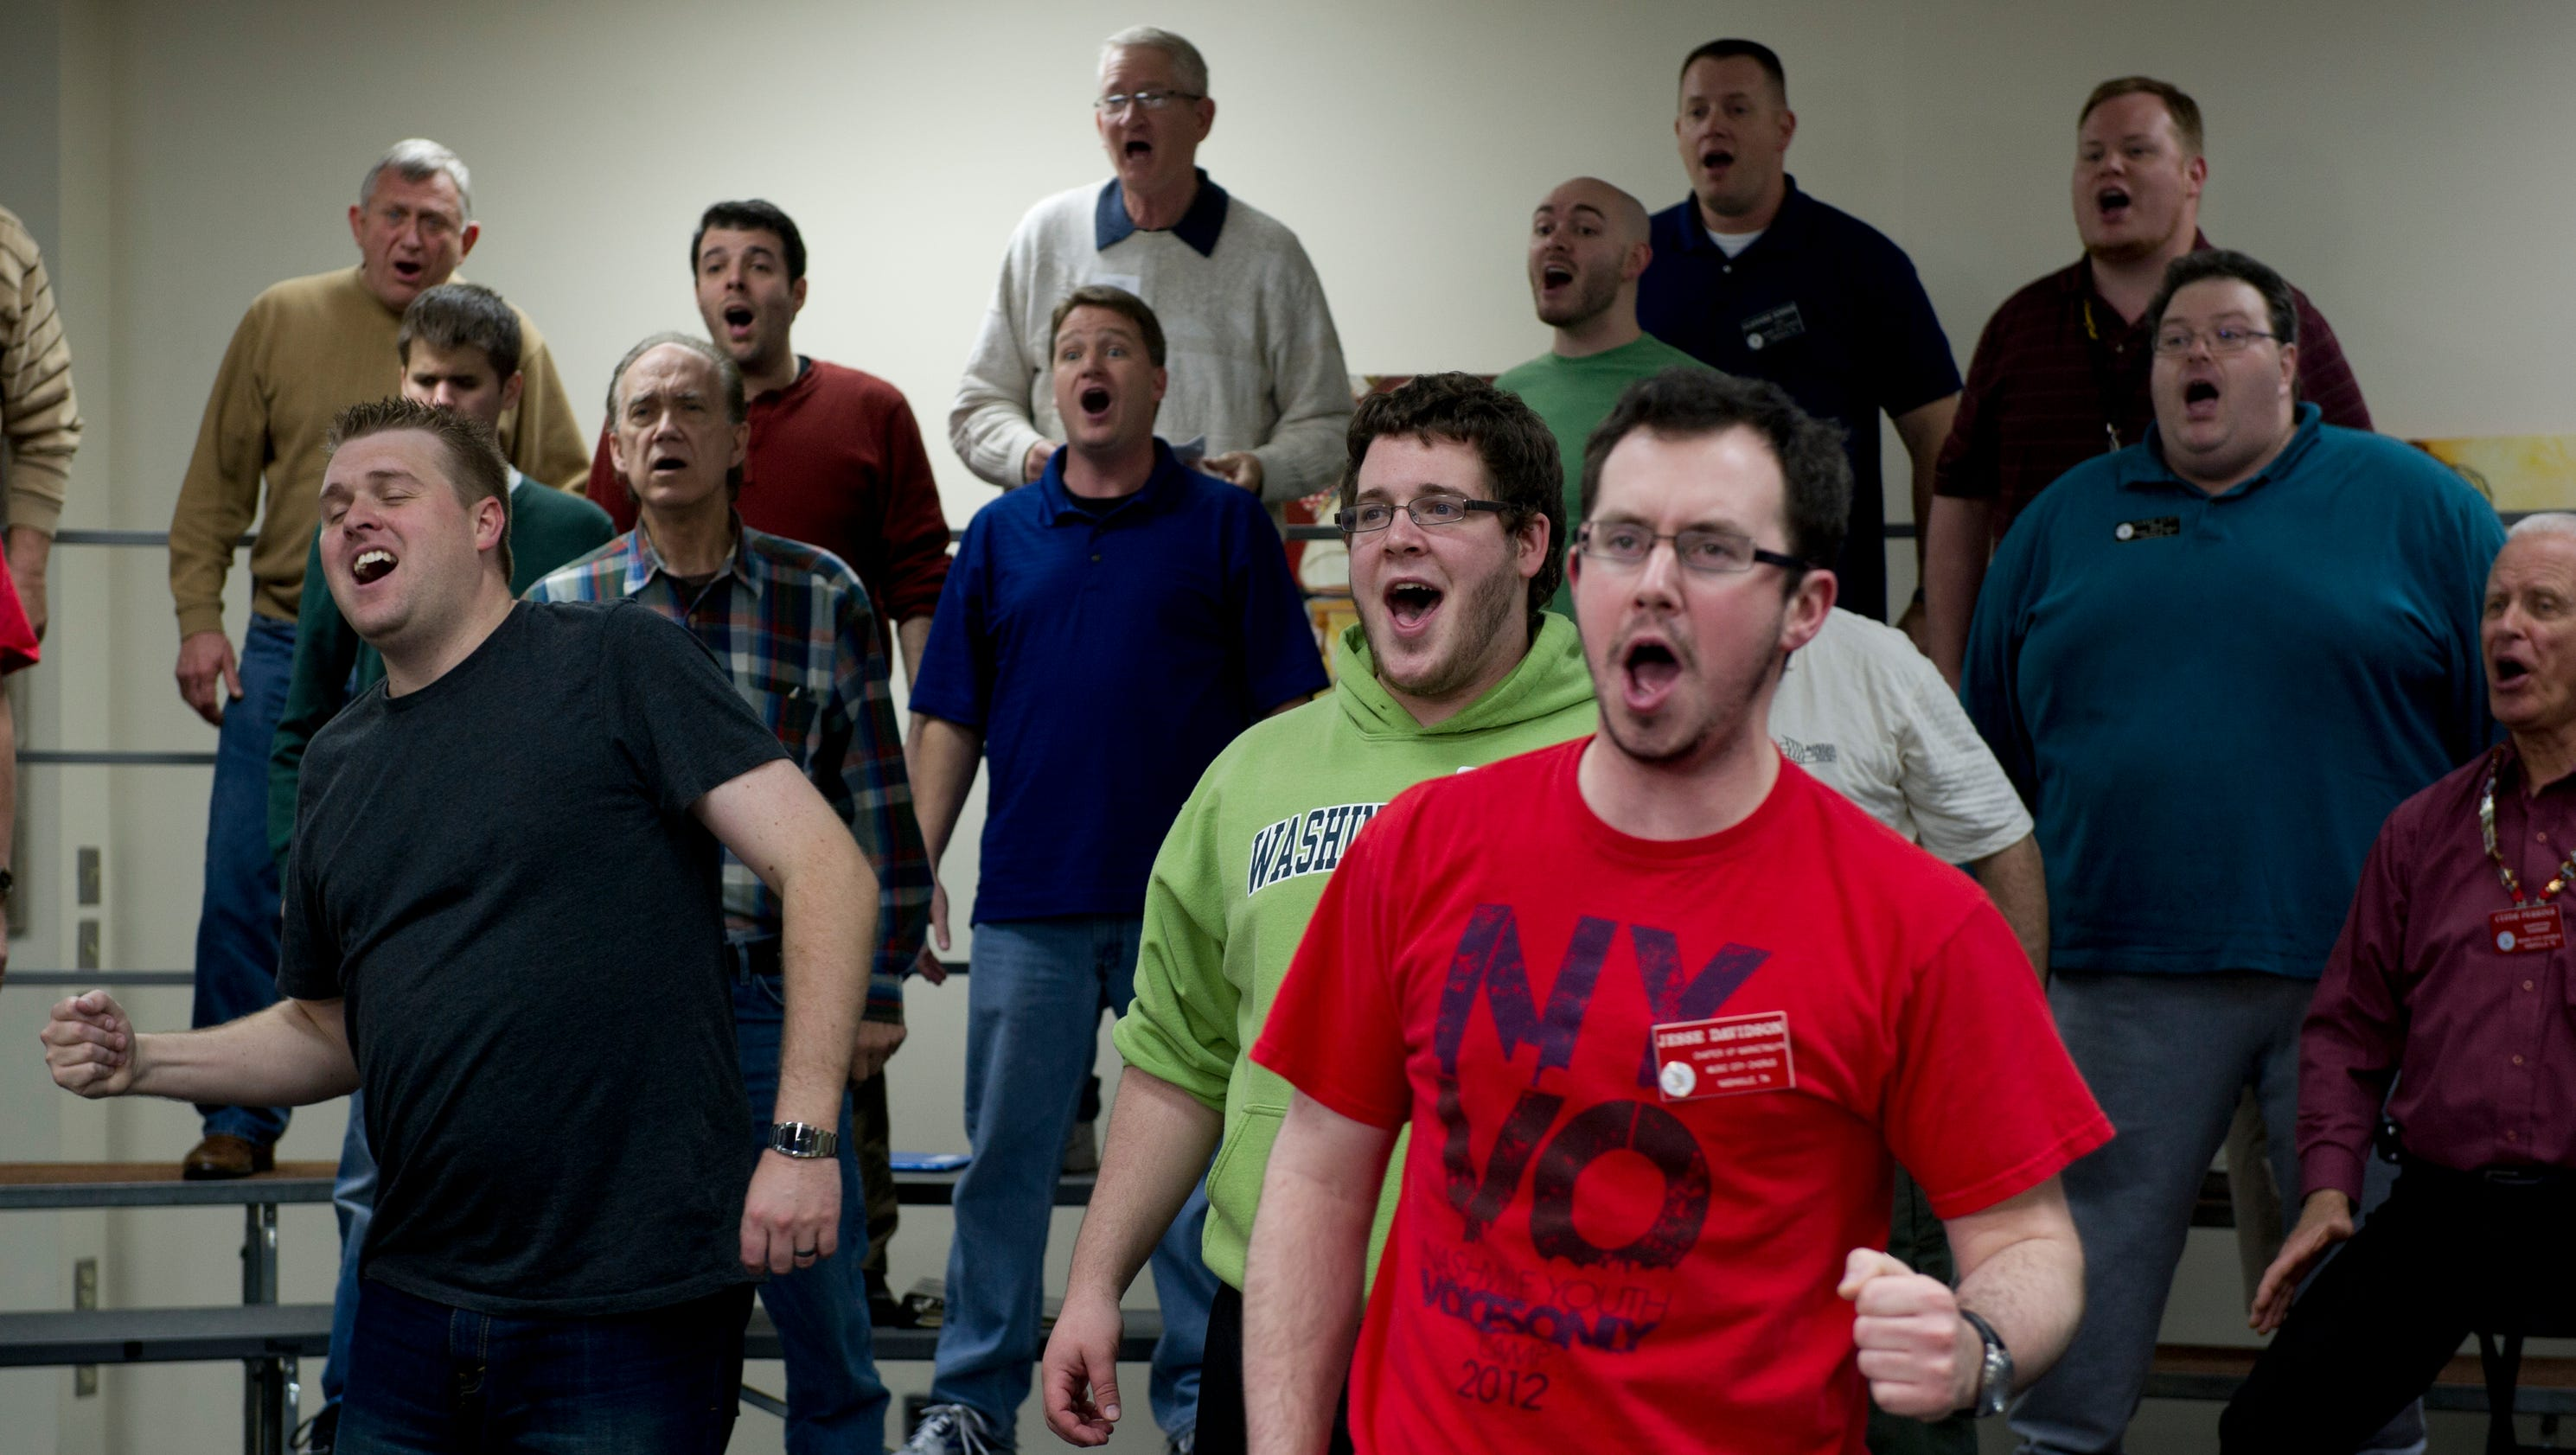 Barbershop Music : Barbershop music takes over Nashville this summer